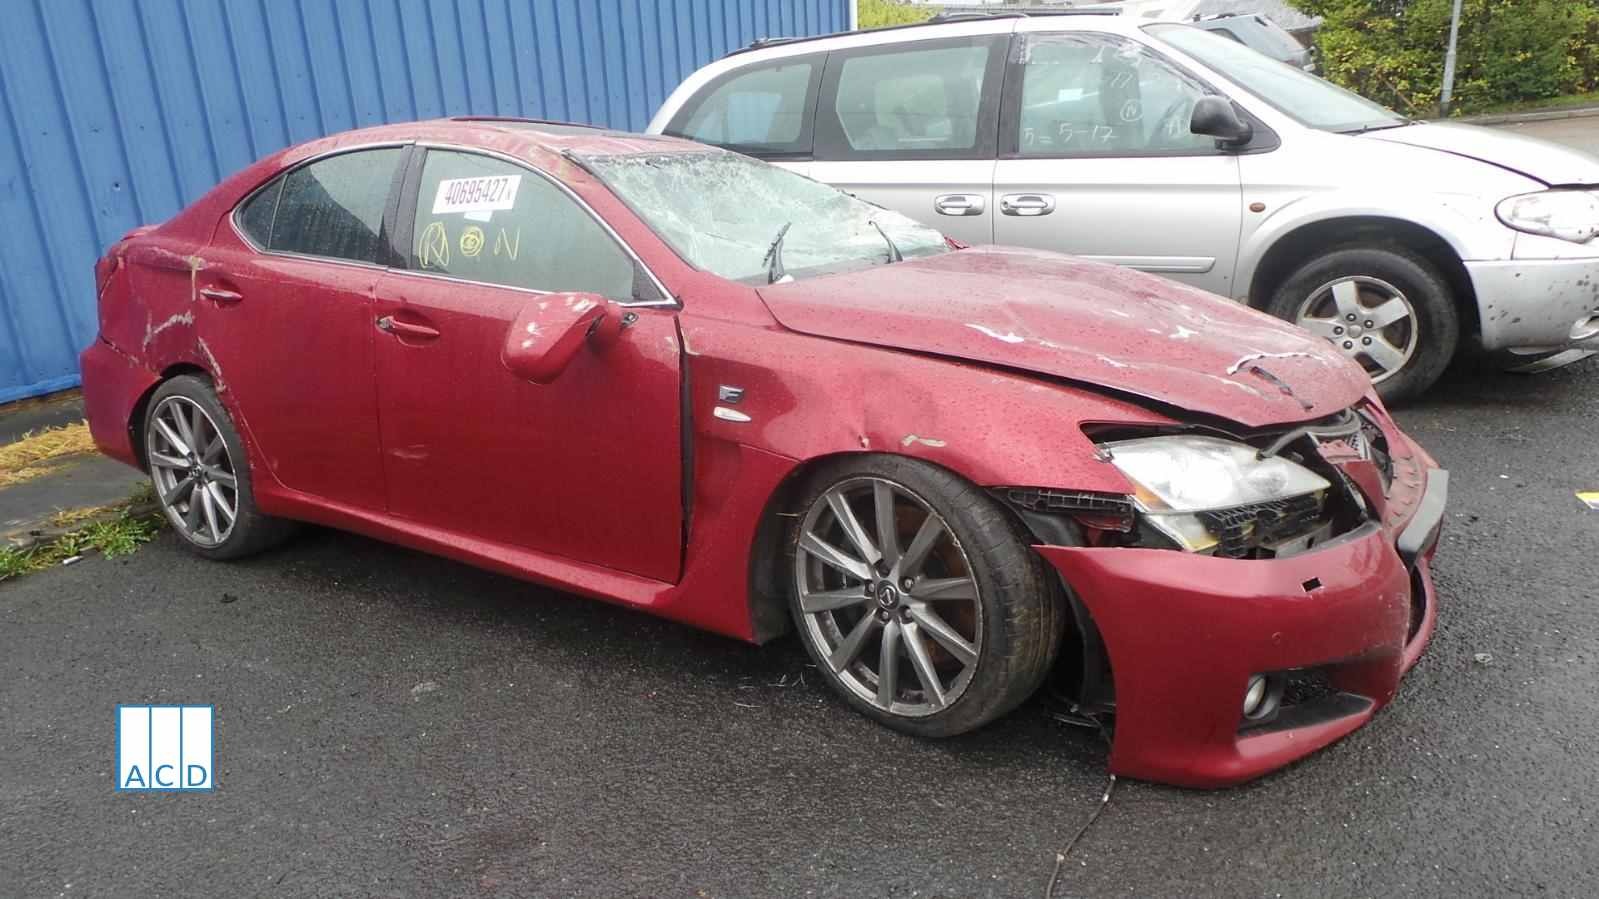 Lexus IS F Auto 5.0L Petrol Automatic 2008